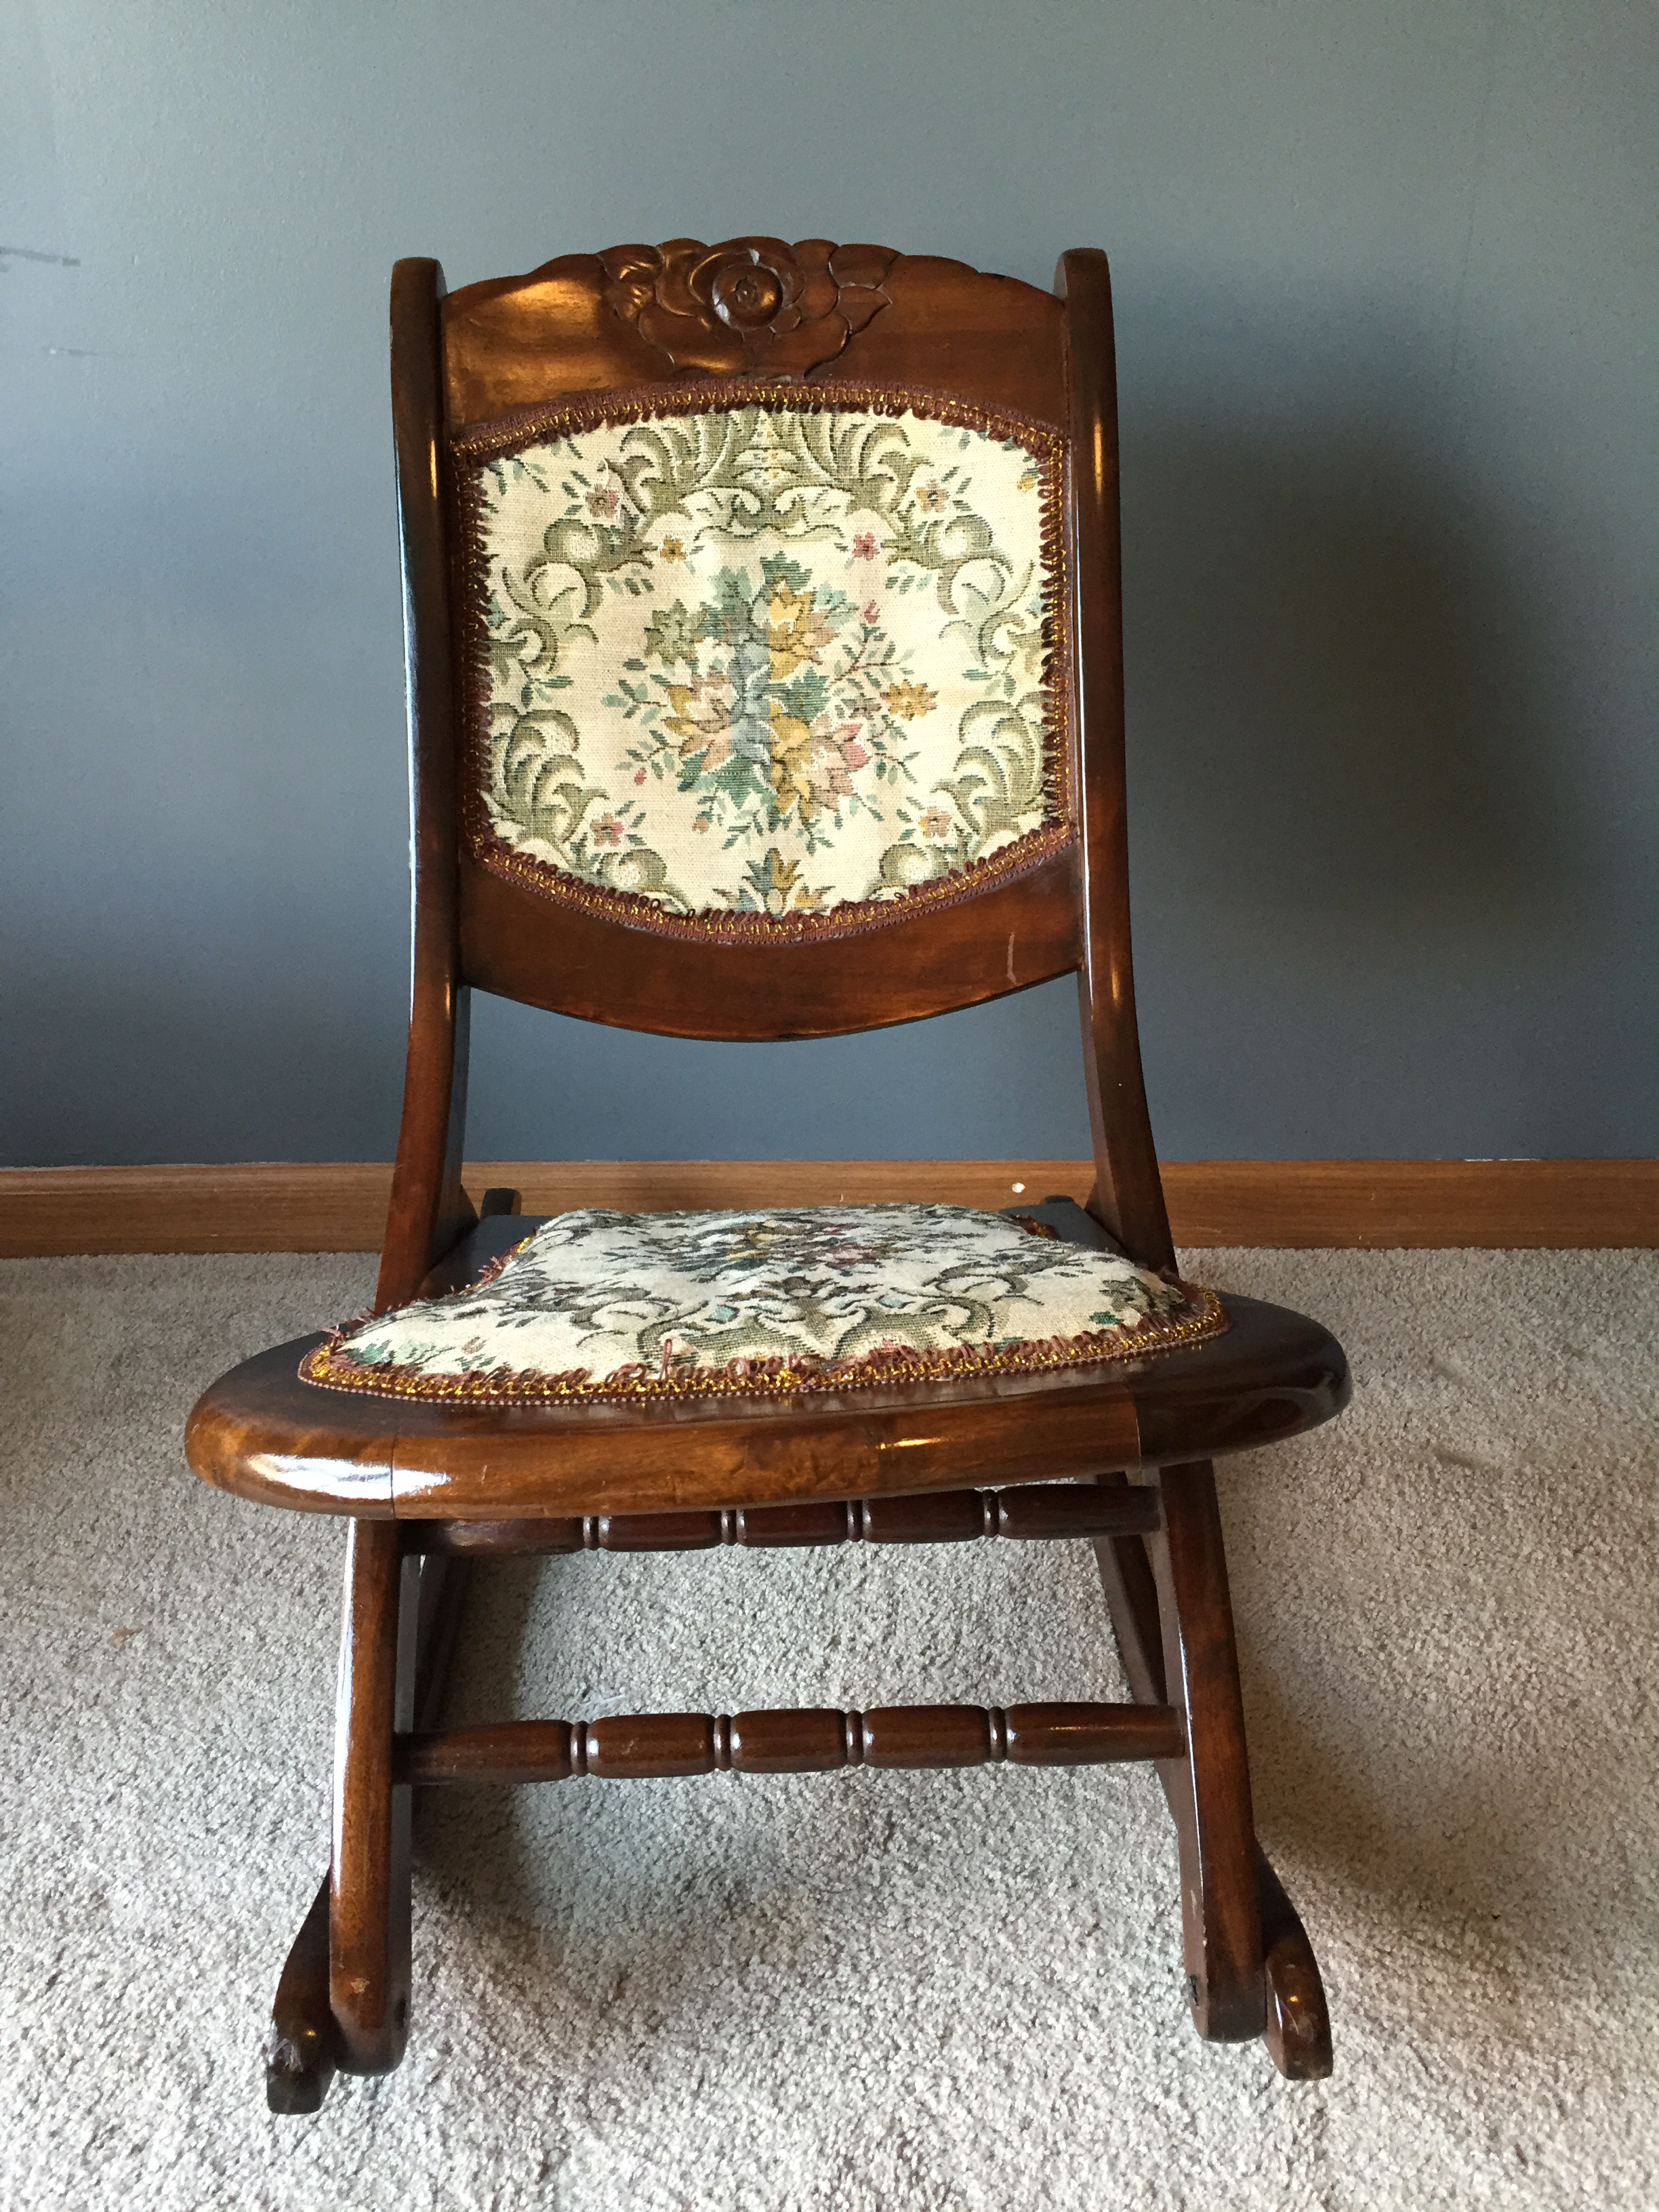 Antique sewing chair - Gorgeous Wooden Antique Folding Rocking Sewing Chair Seat And Back Cushion Feature Victorian Style Tapestry Ornate Rose Carving In Center Of Wood Back